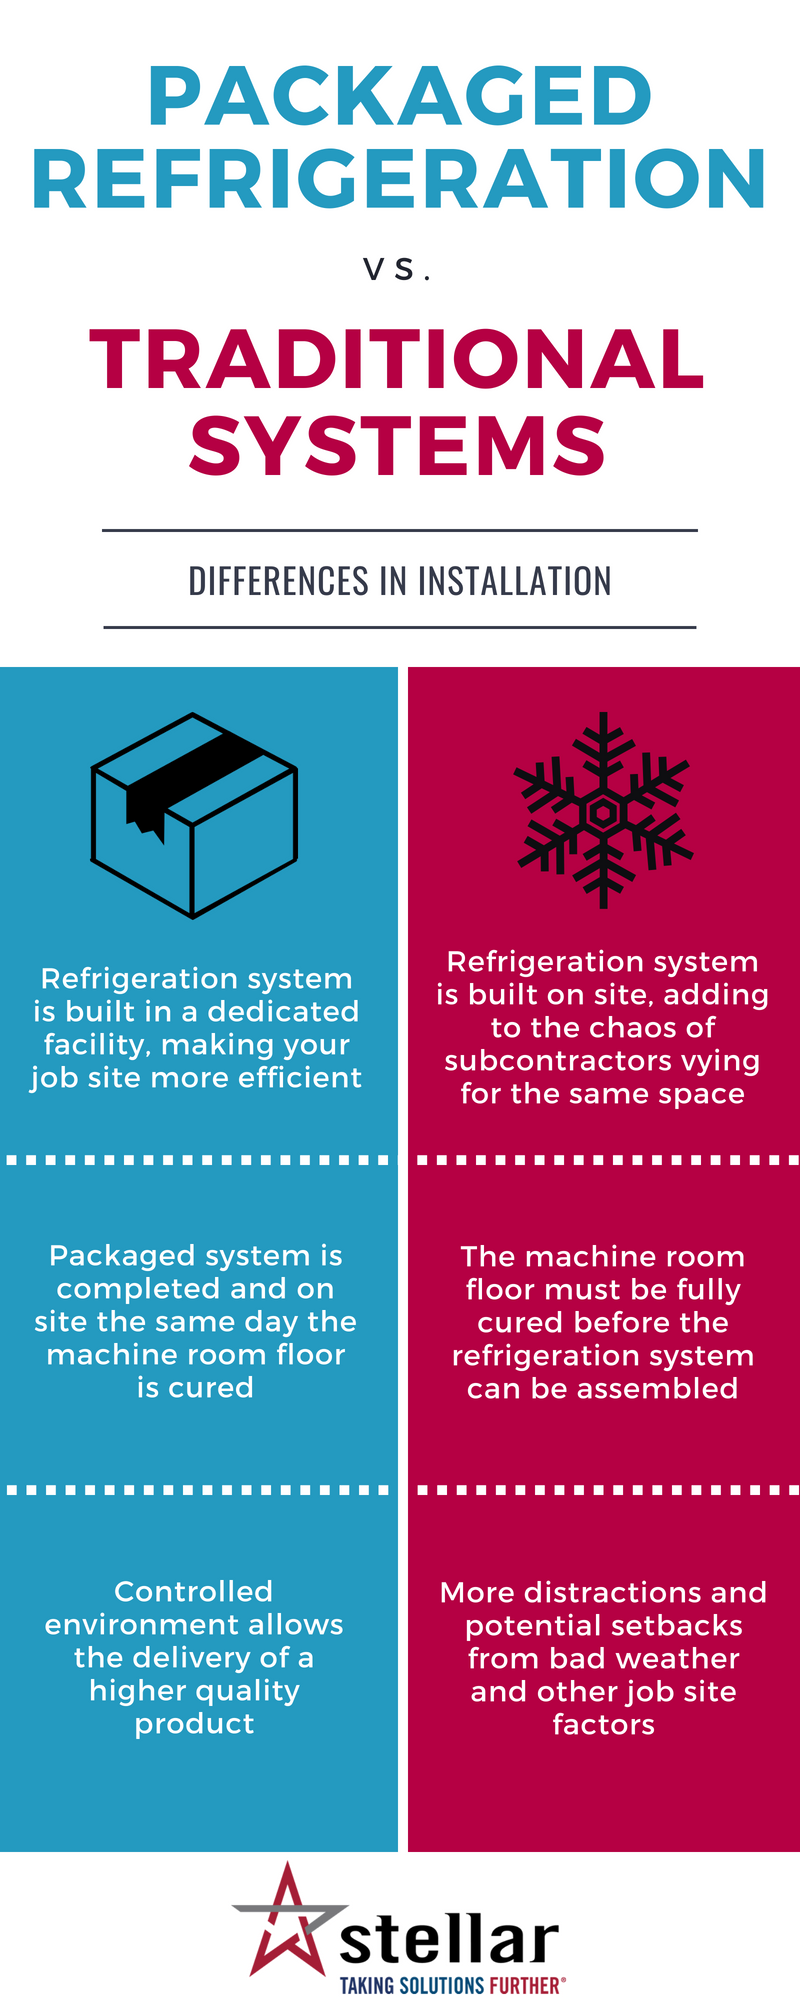 Installing Packaged Refrigeration vs. Traditional Systems Infographic